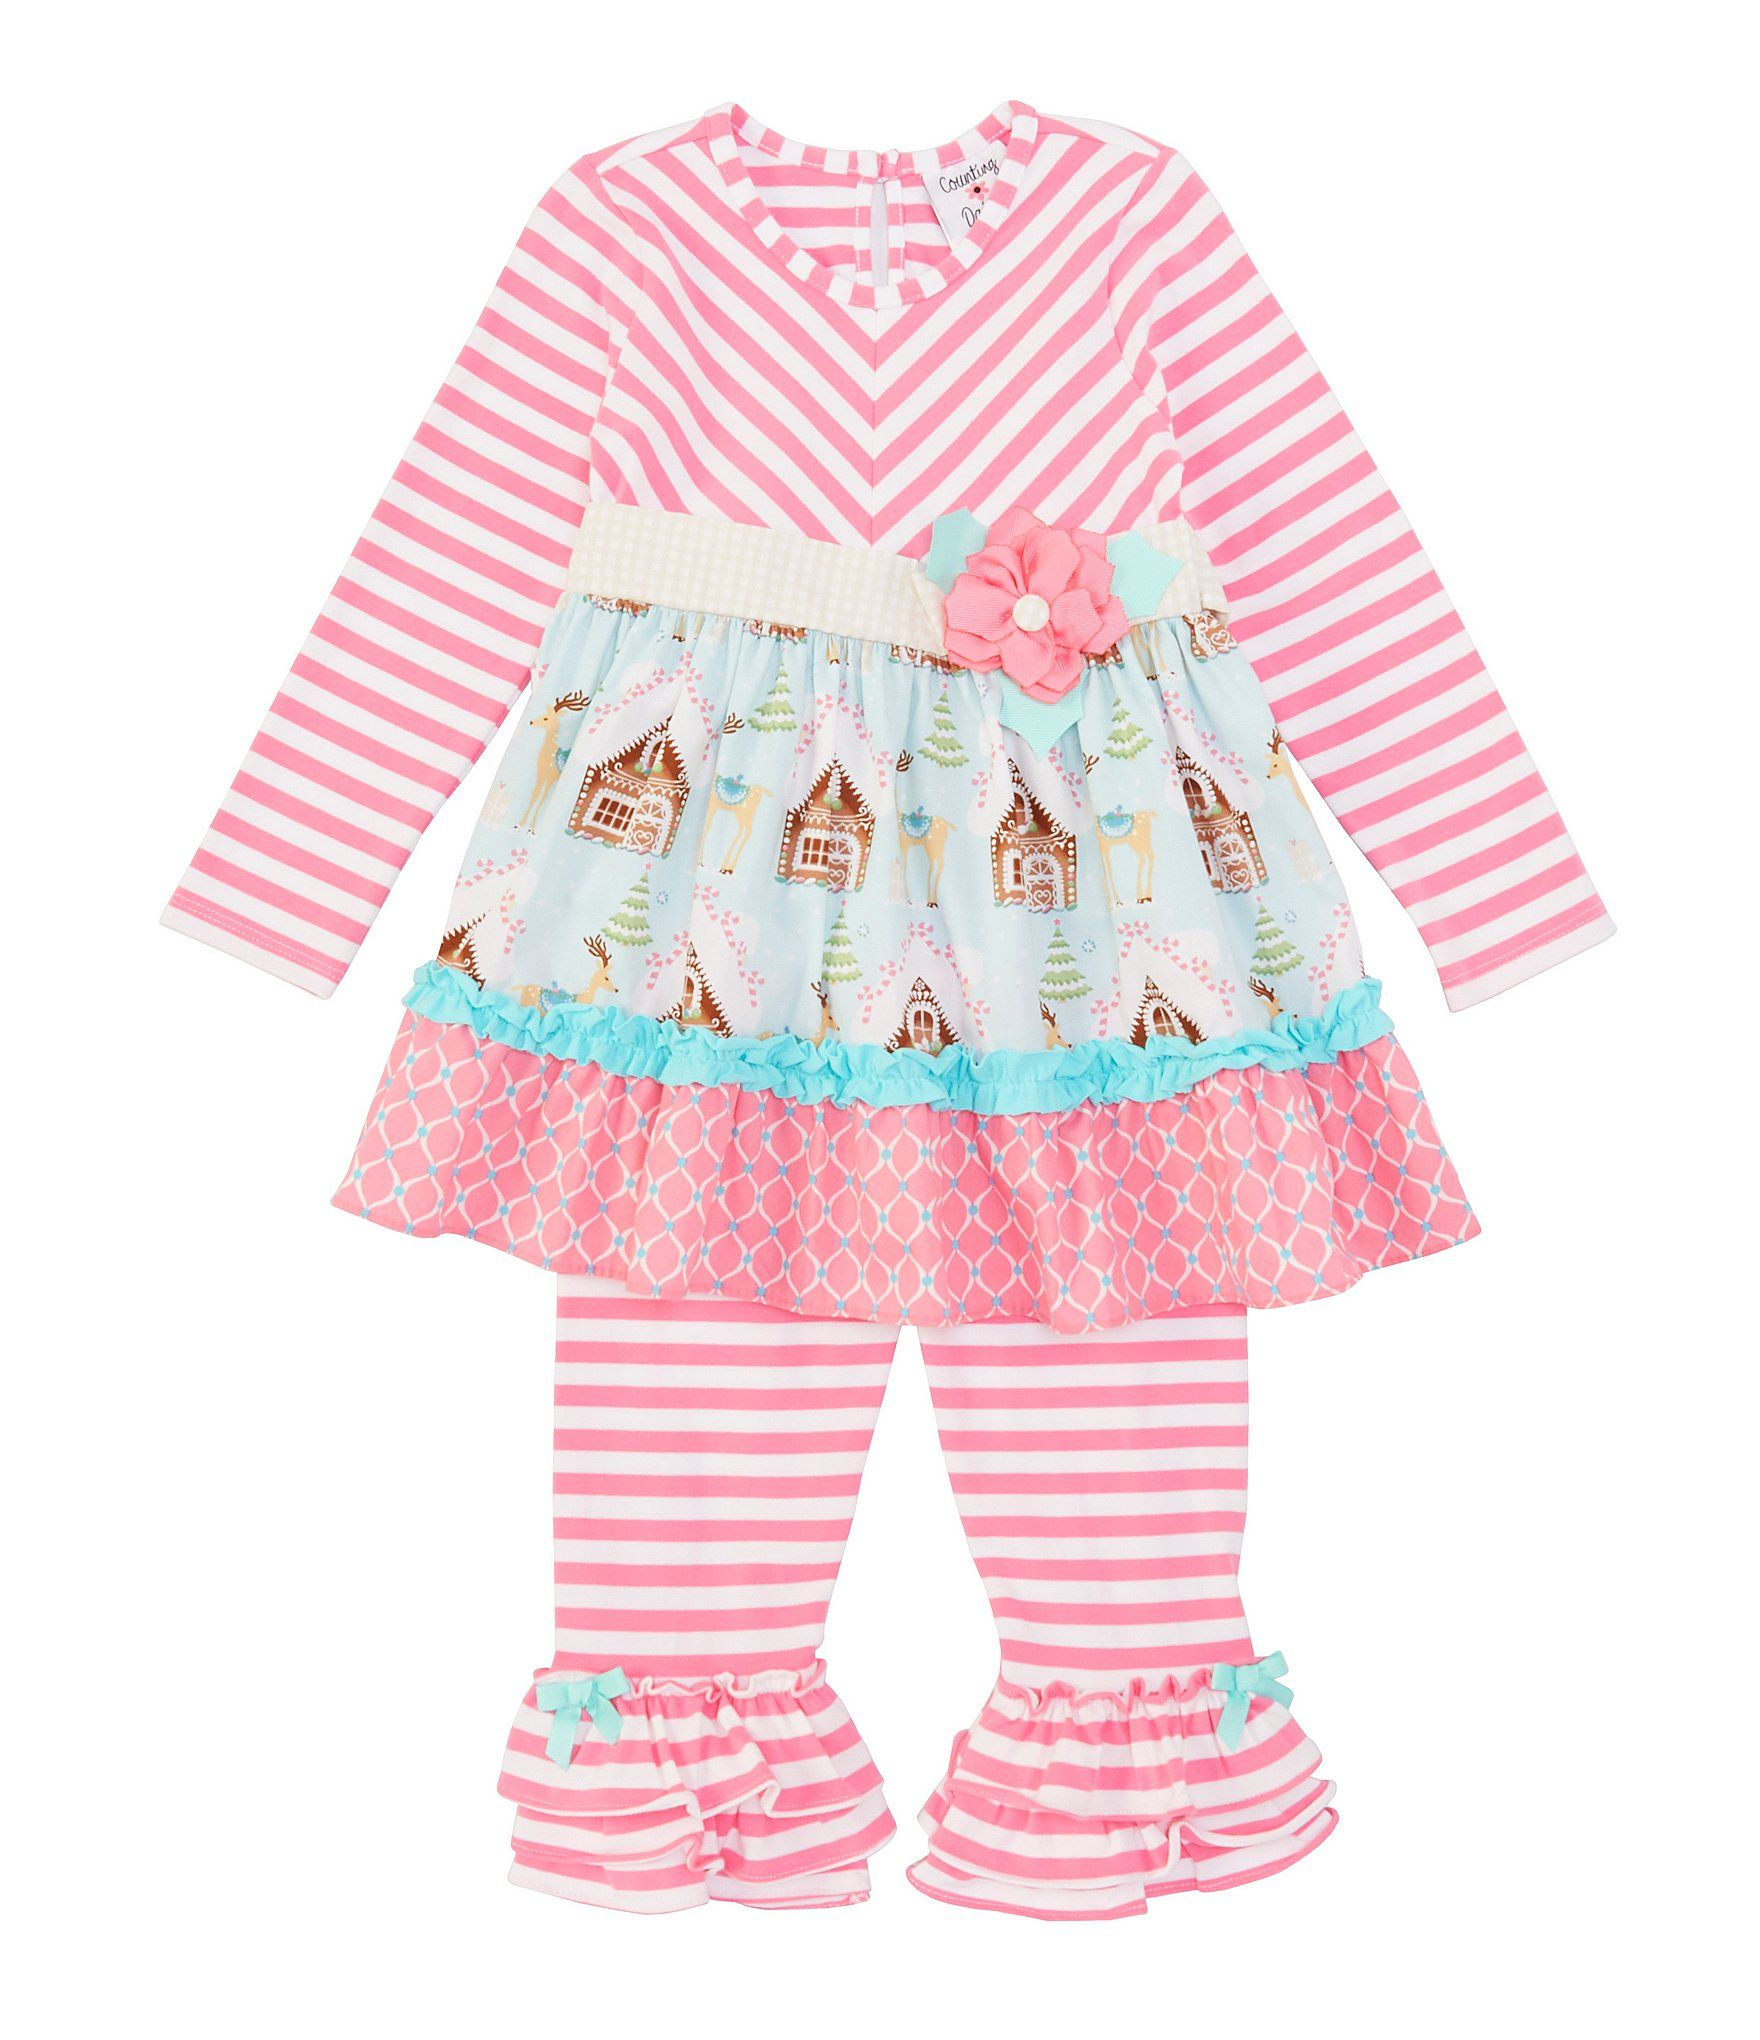 Counting Daisies Little Girl 2T-6X Mixed MediaGingerbread-Print Dress  Striped Leggings Set - Pink 2T #stripedleggings